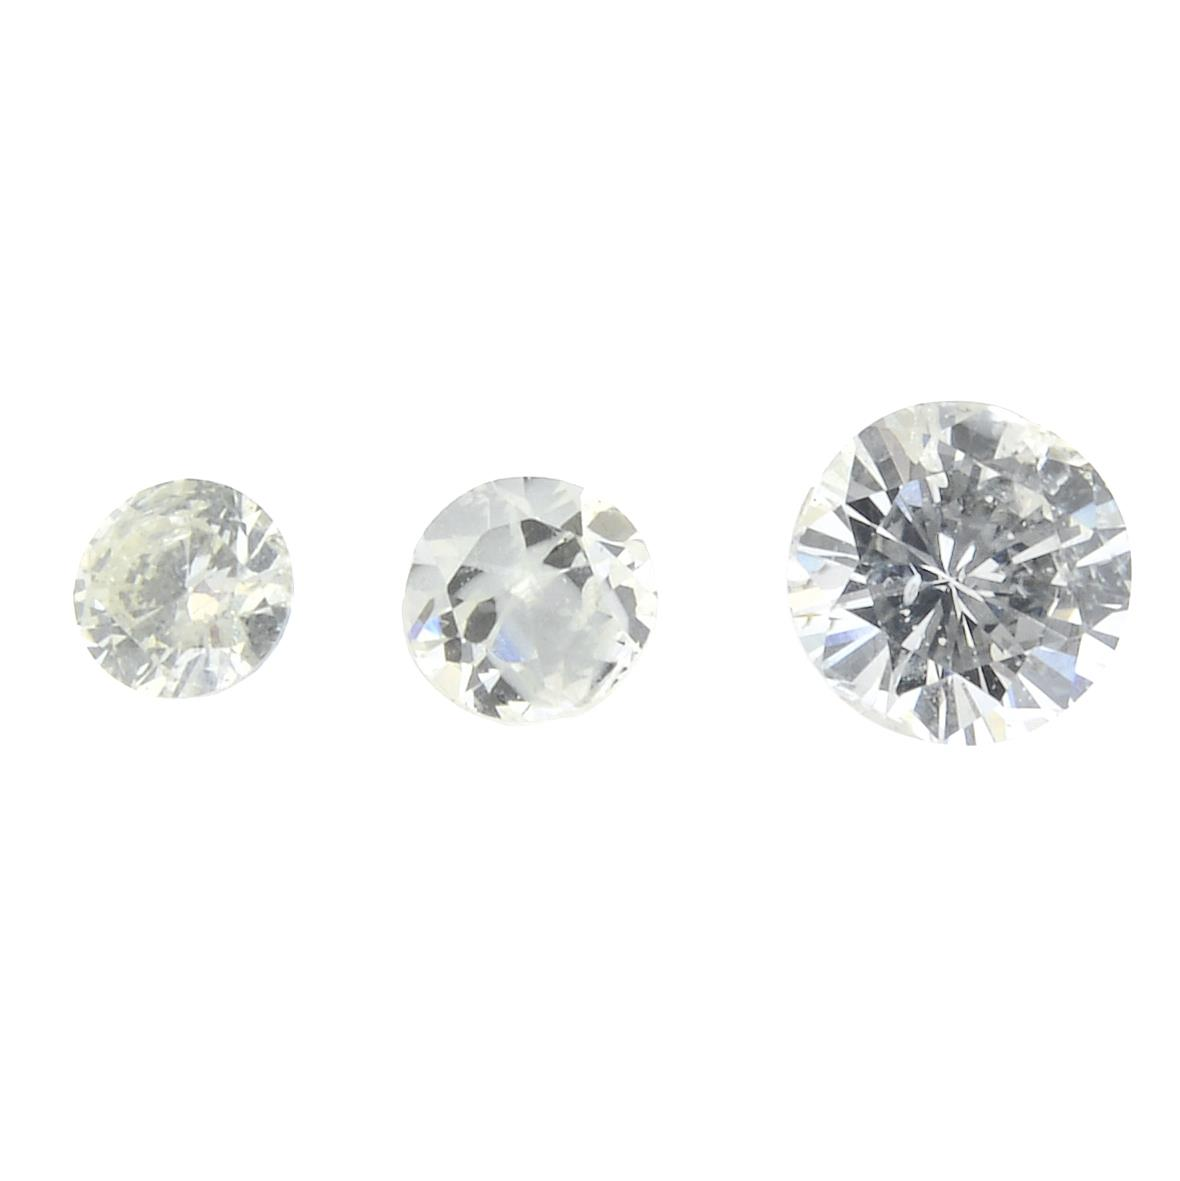 A selection of diamonds.